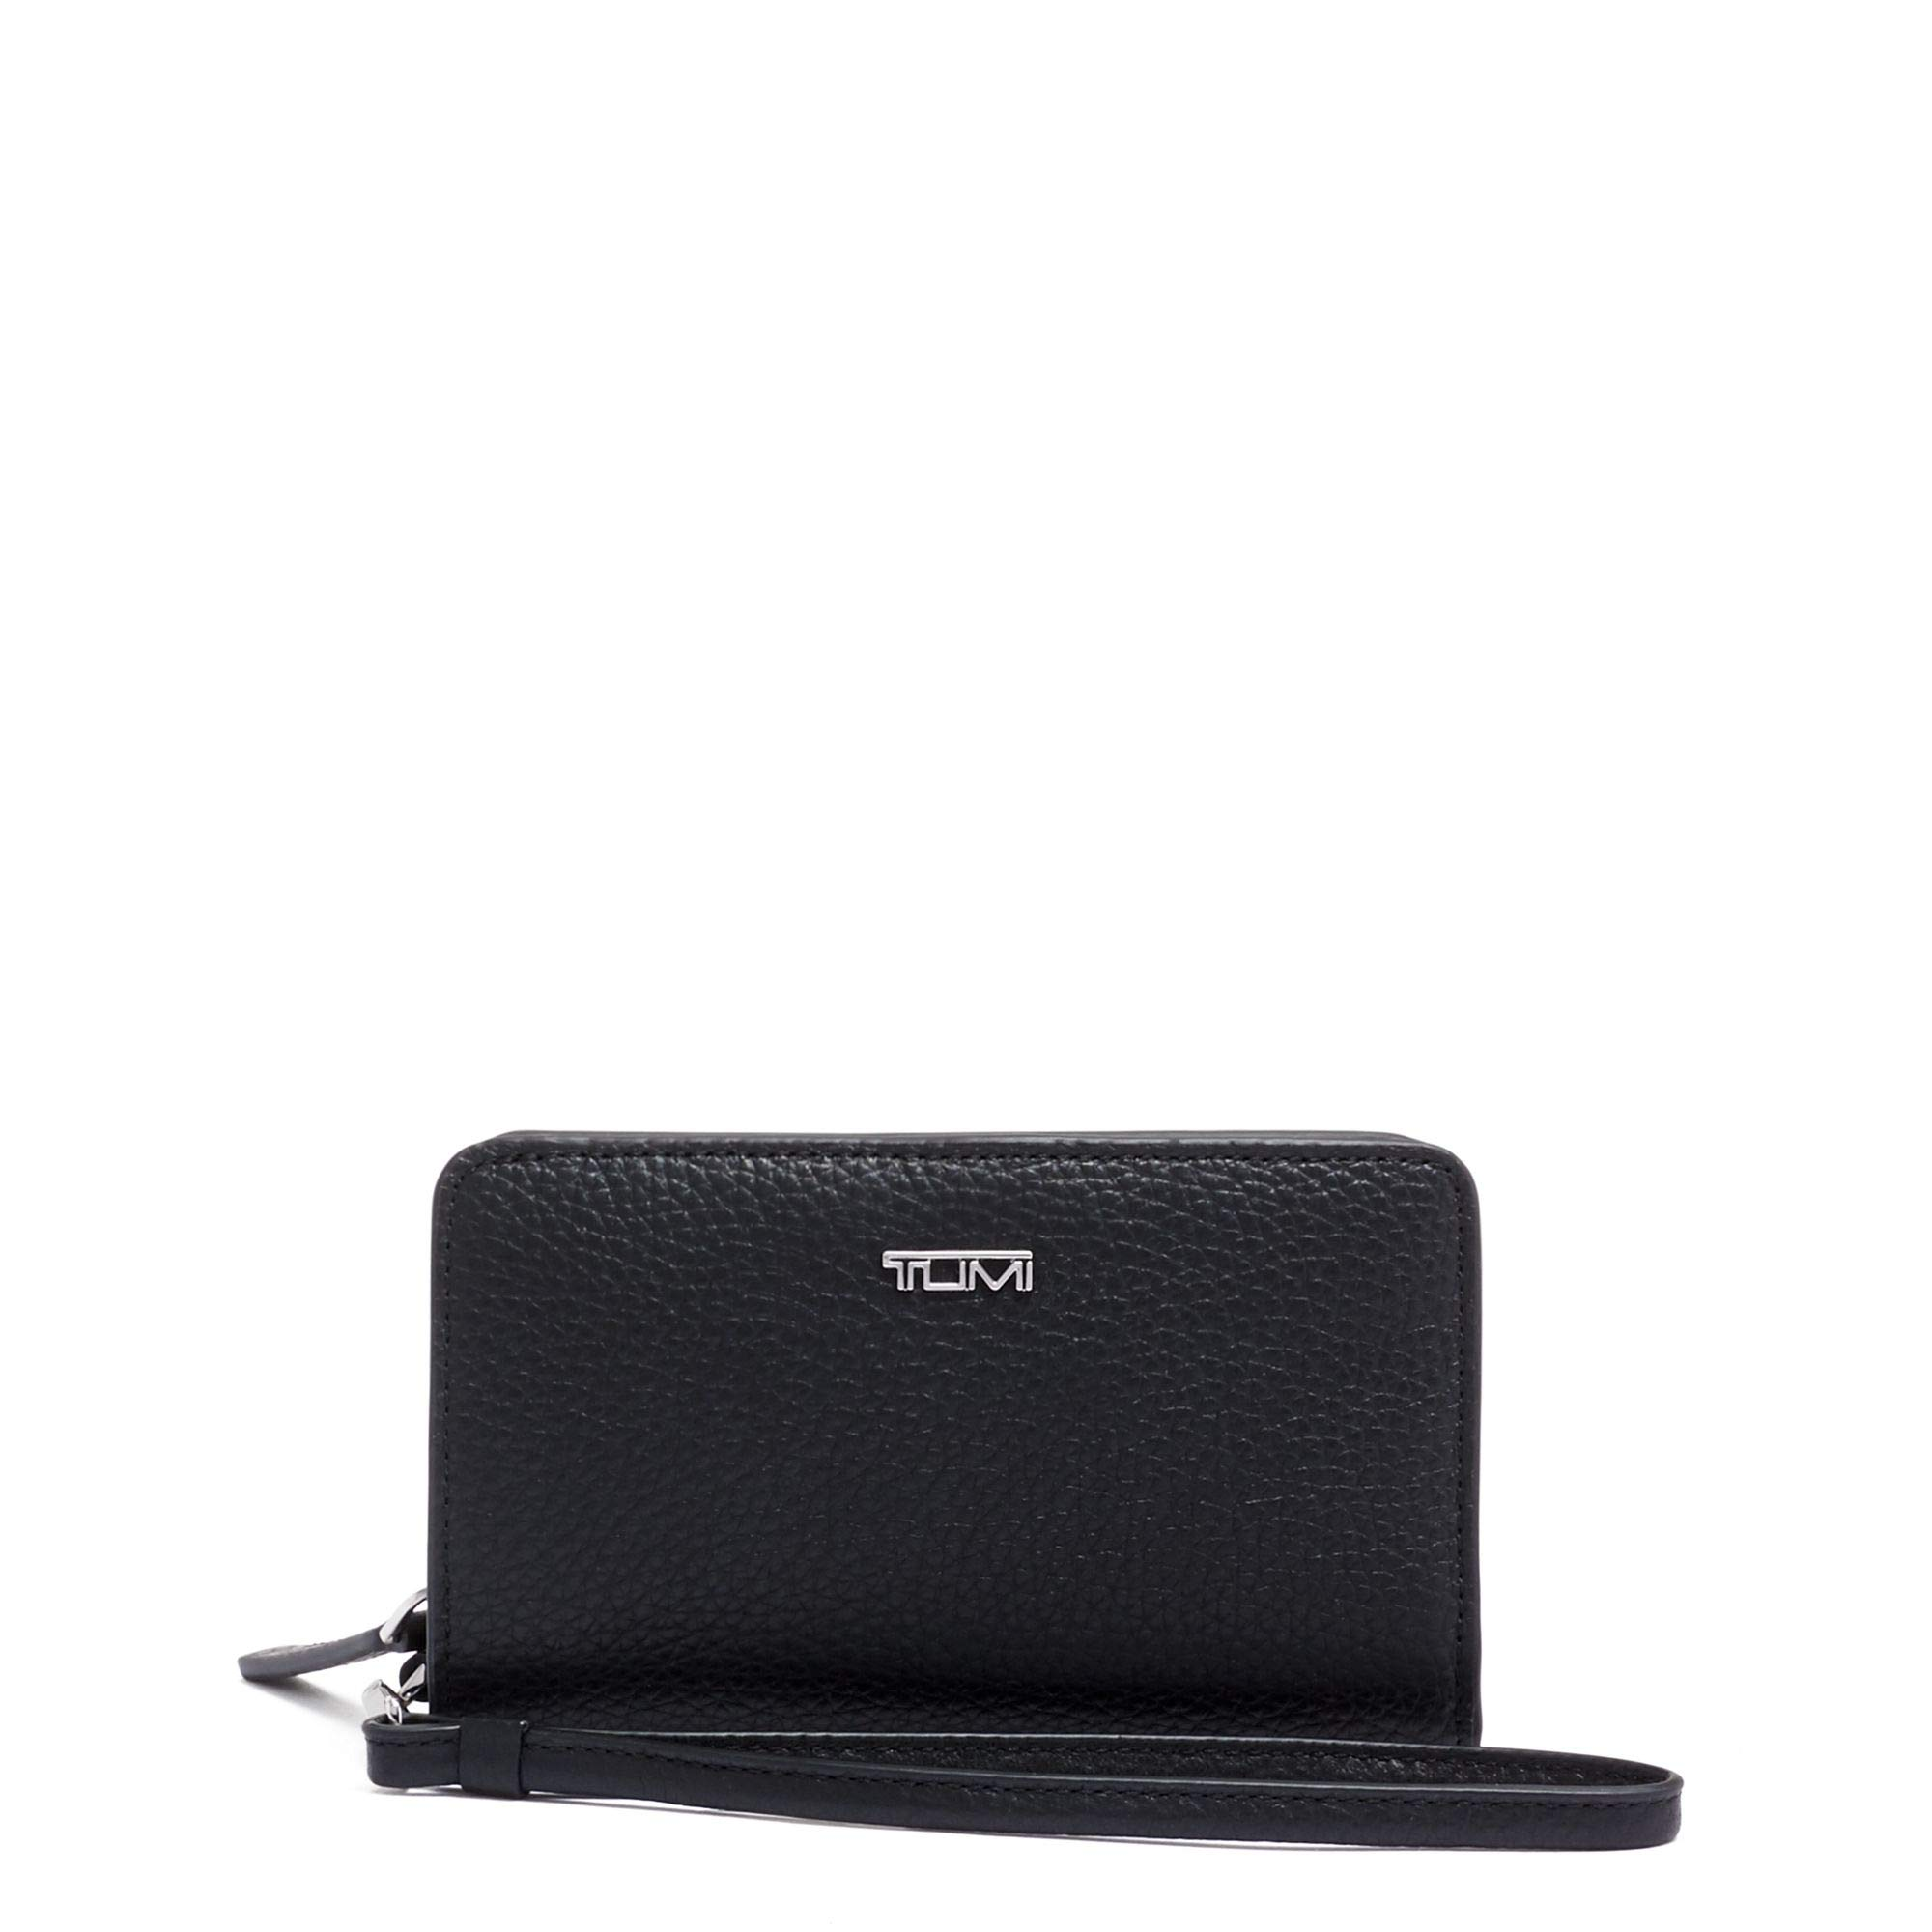 TUMI - Belden French Purse - Black